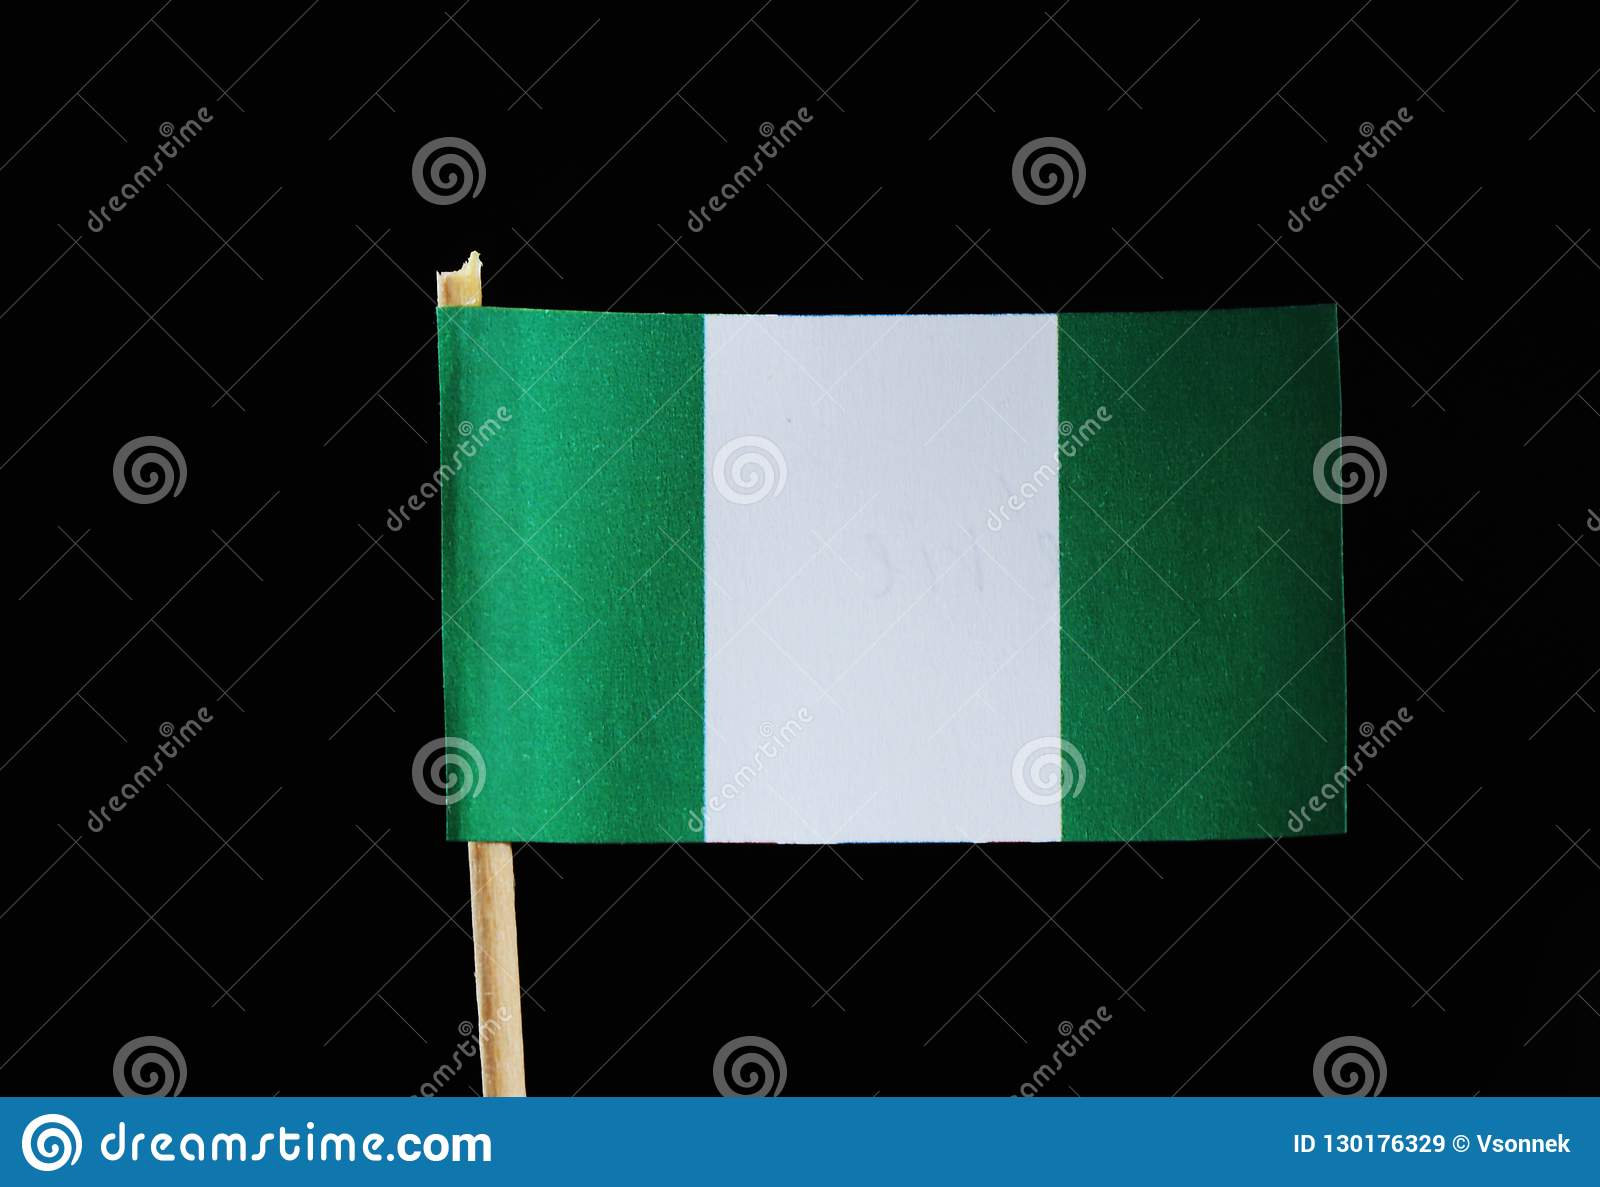 A national flag of Nigeria on toothpick on black background. Nigerian flag contain green and white colour.